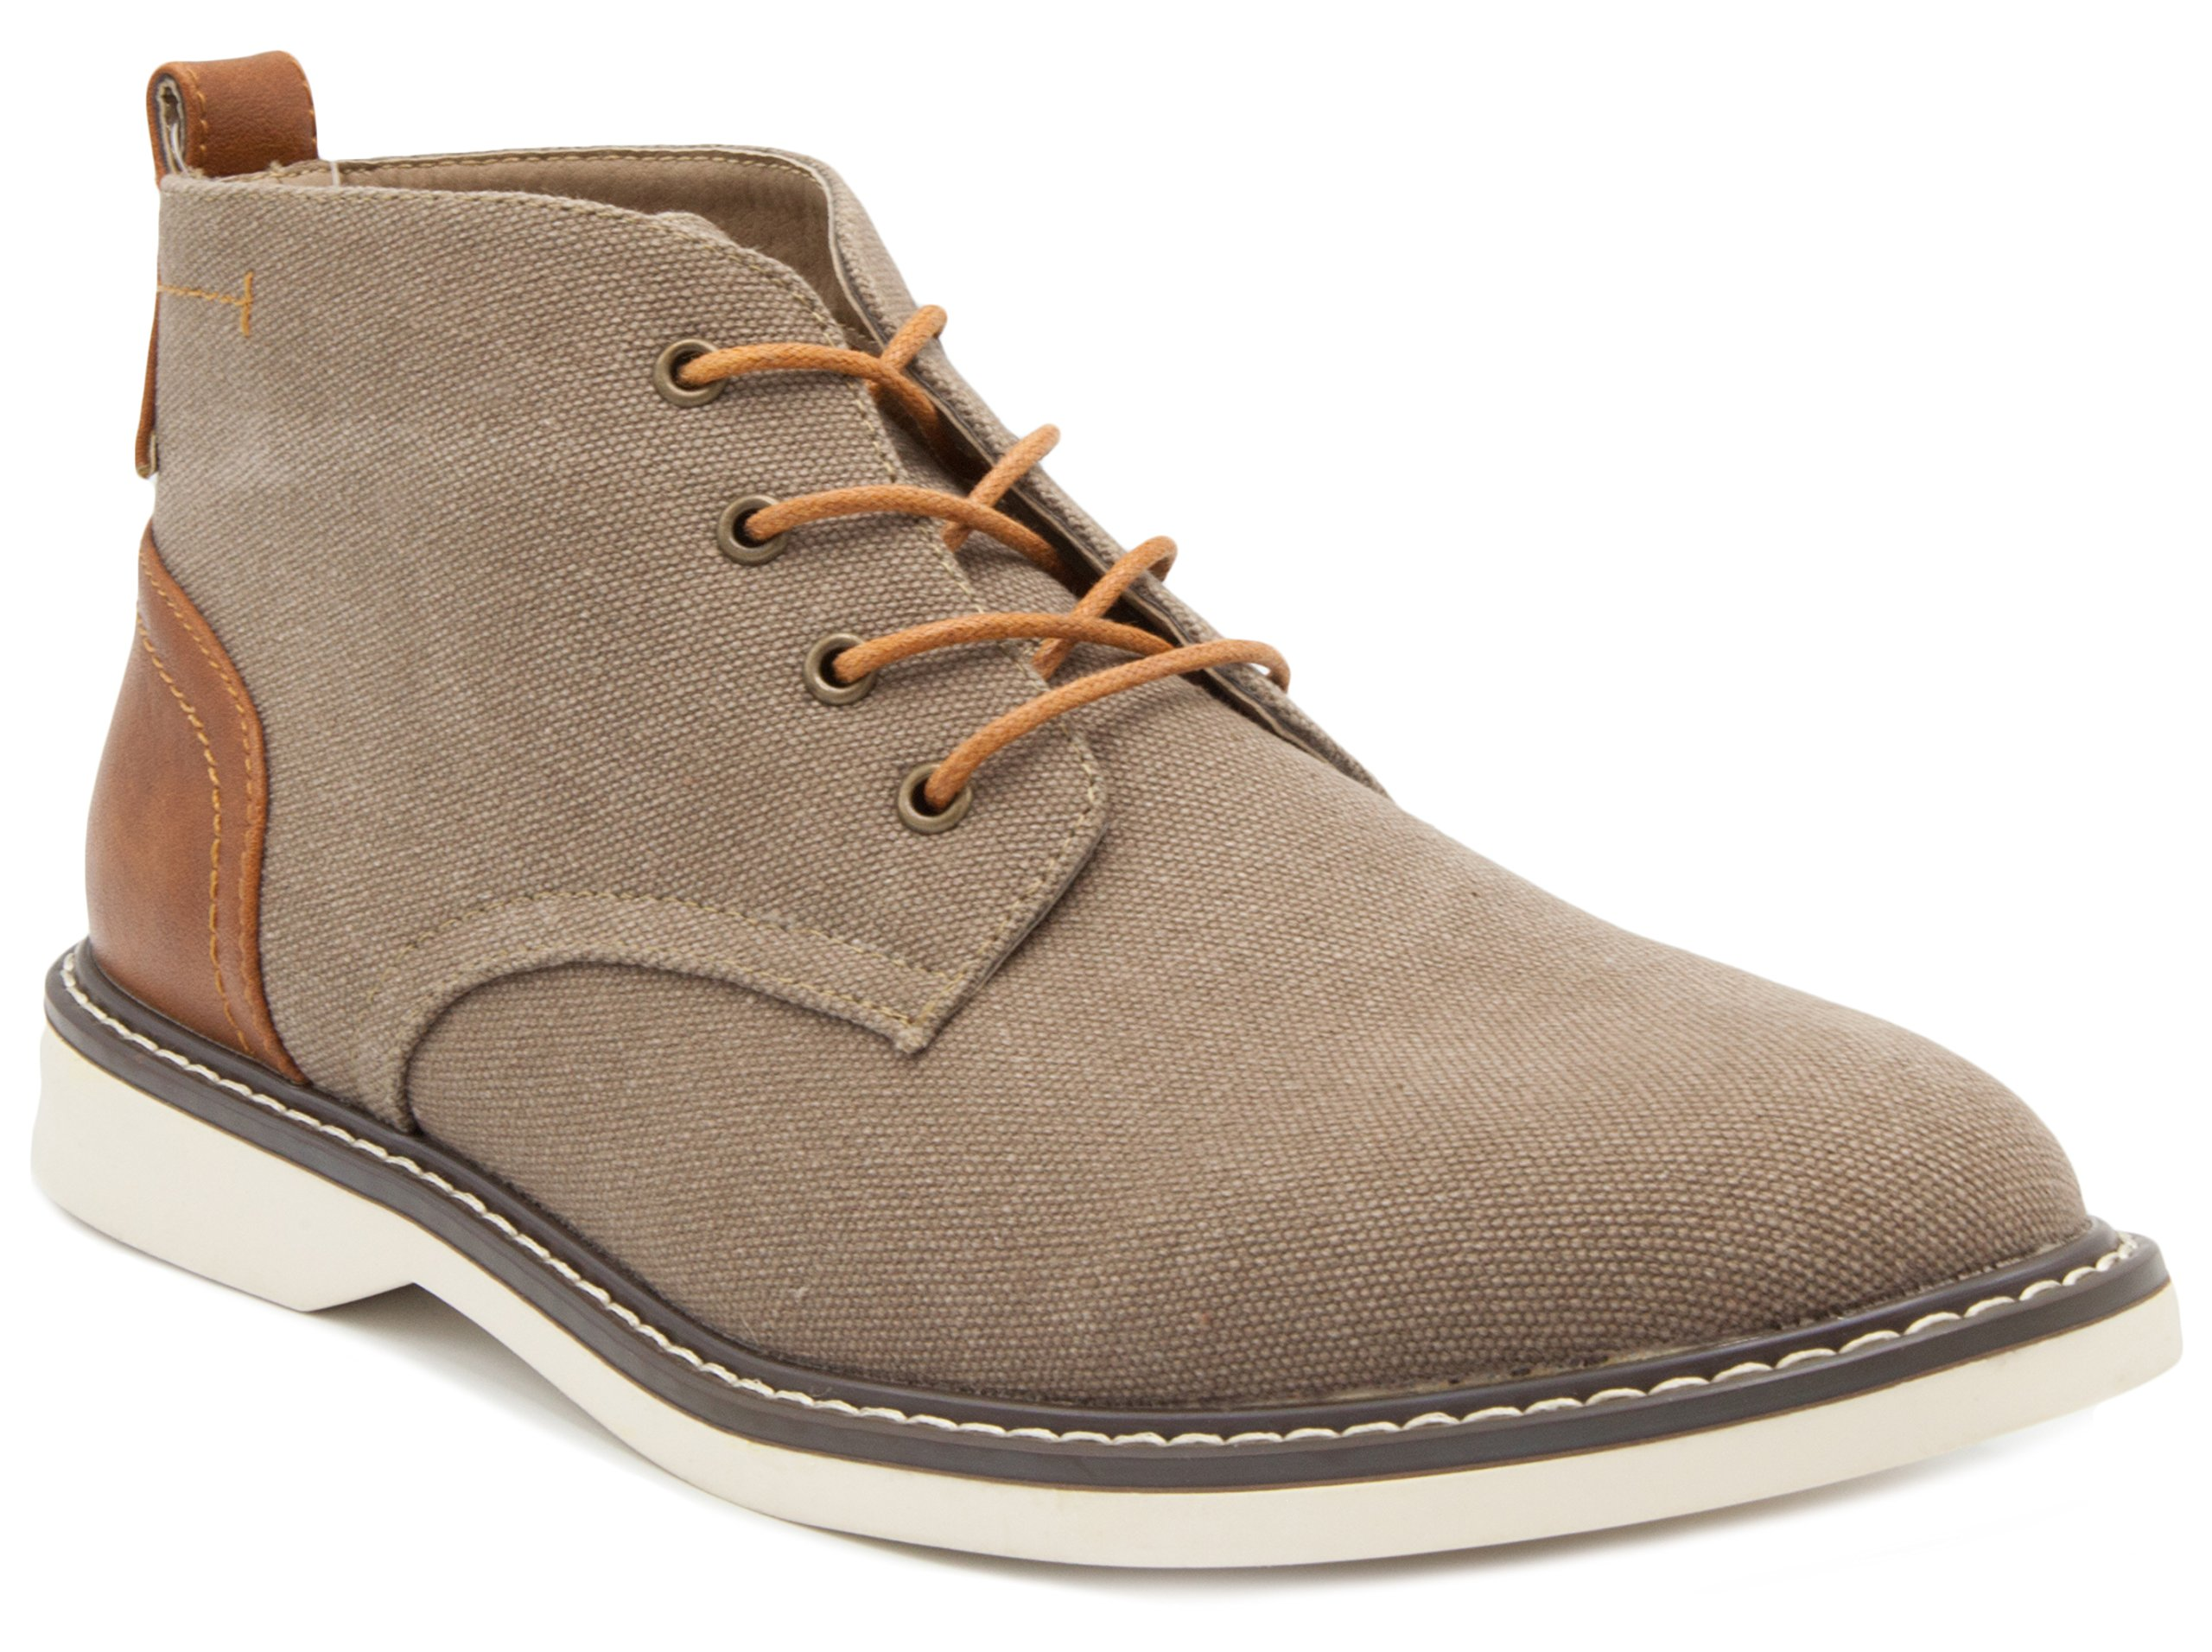 London Fog Mens Belmont Chukka Boot Brown 9 M US by London Fog